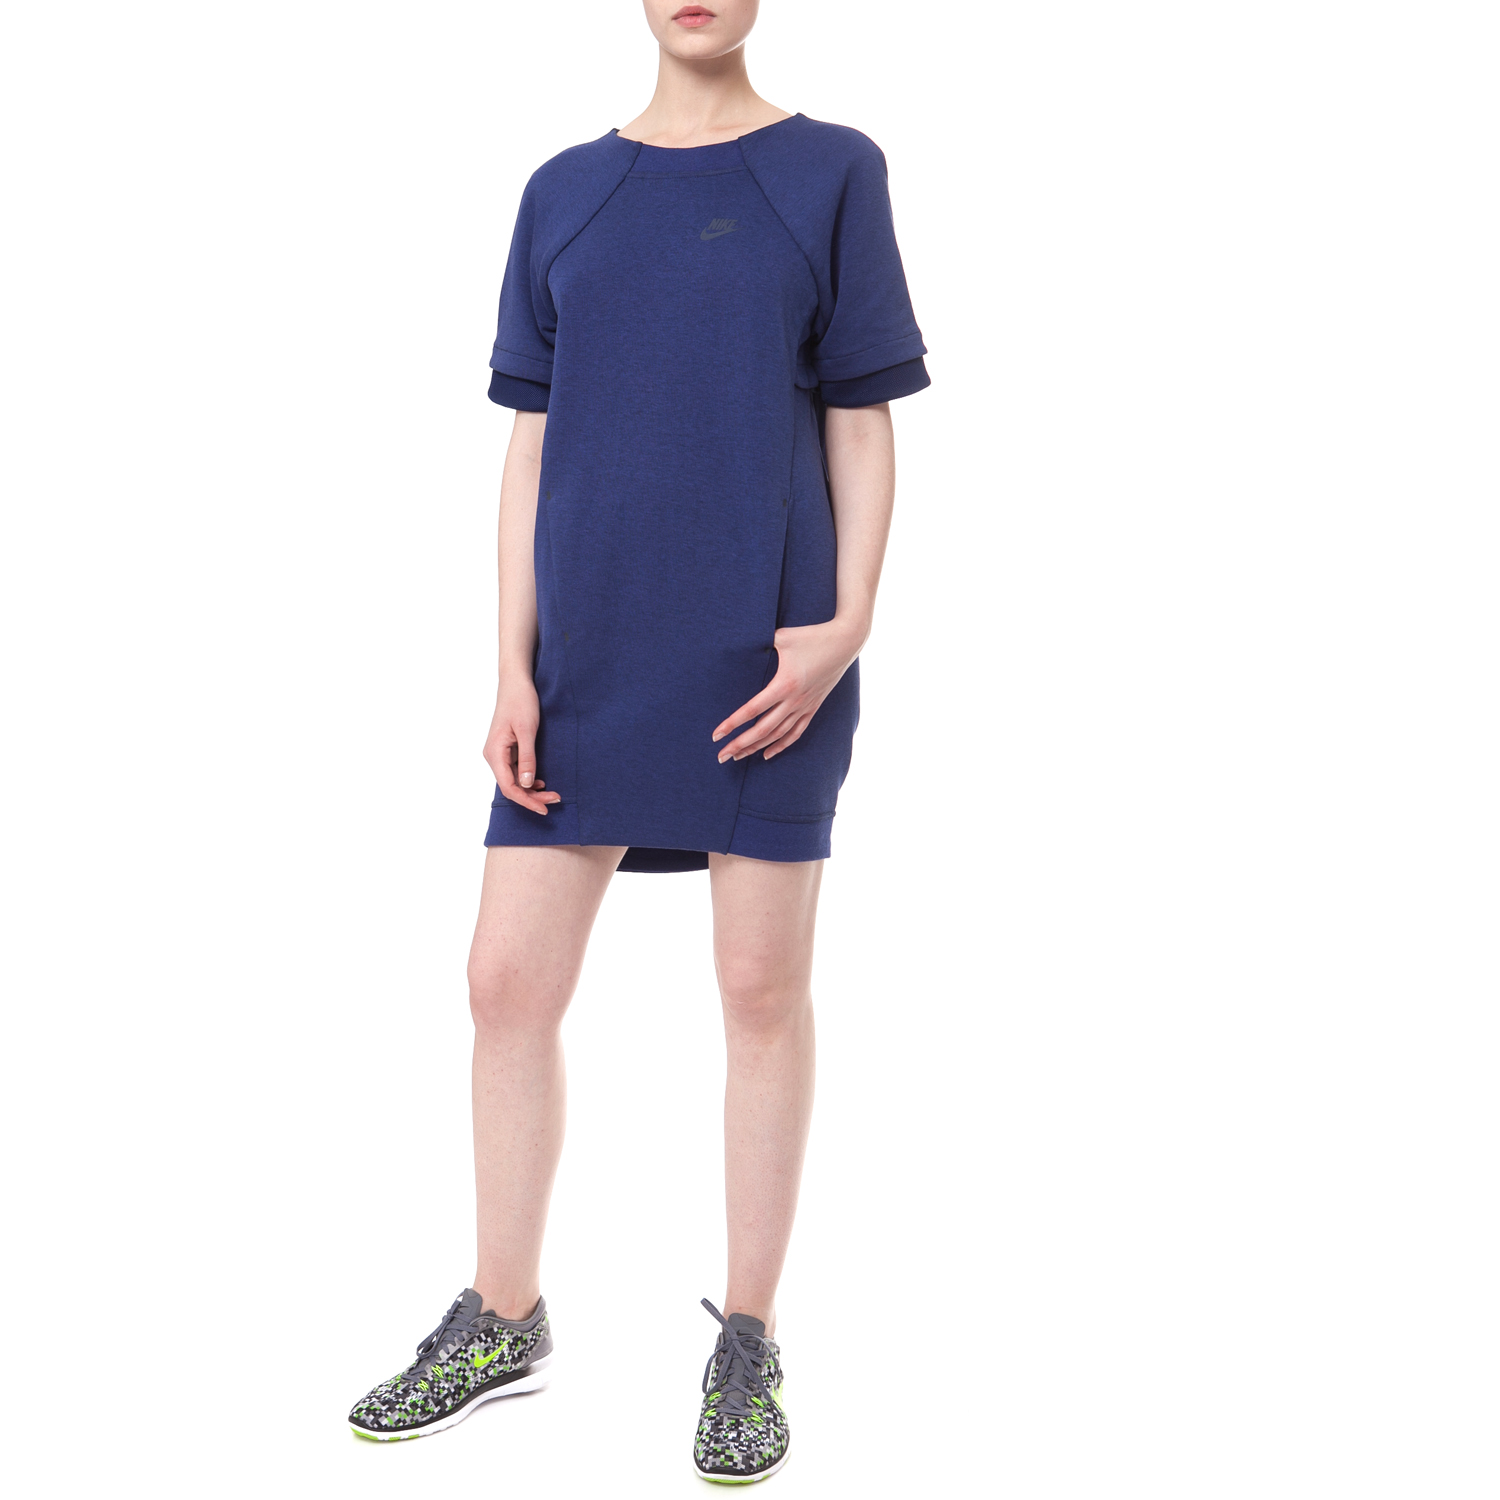 e74222acf8 NIKE - Φόρεμα Nike TECH FLEECE DRESS-MESH μπλε